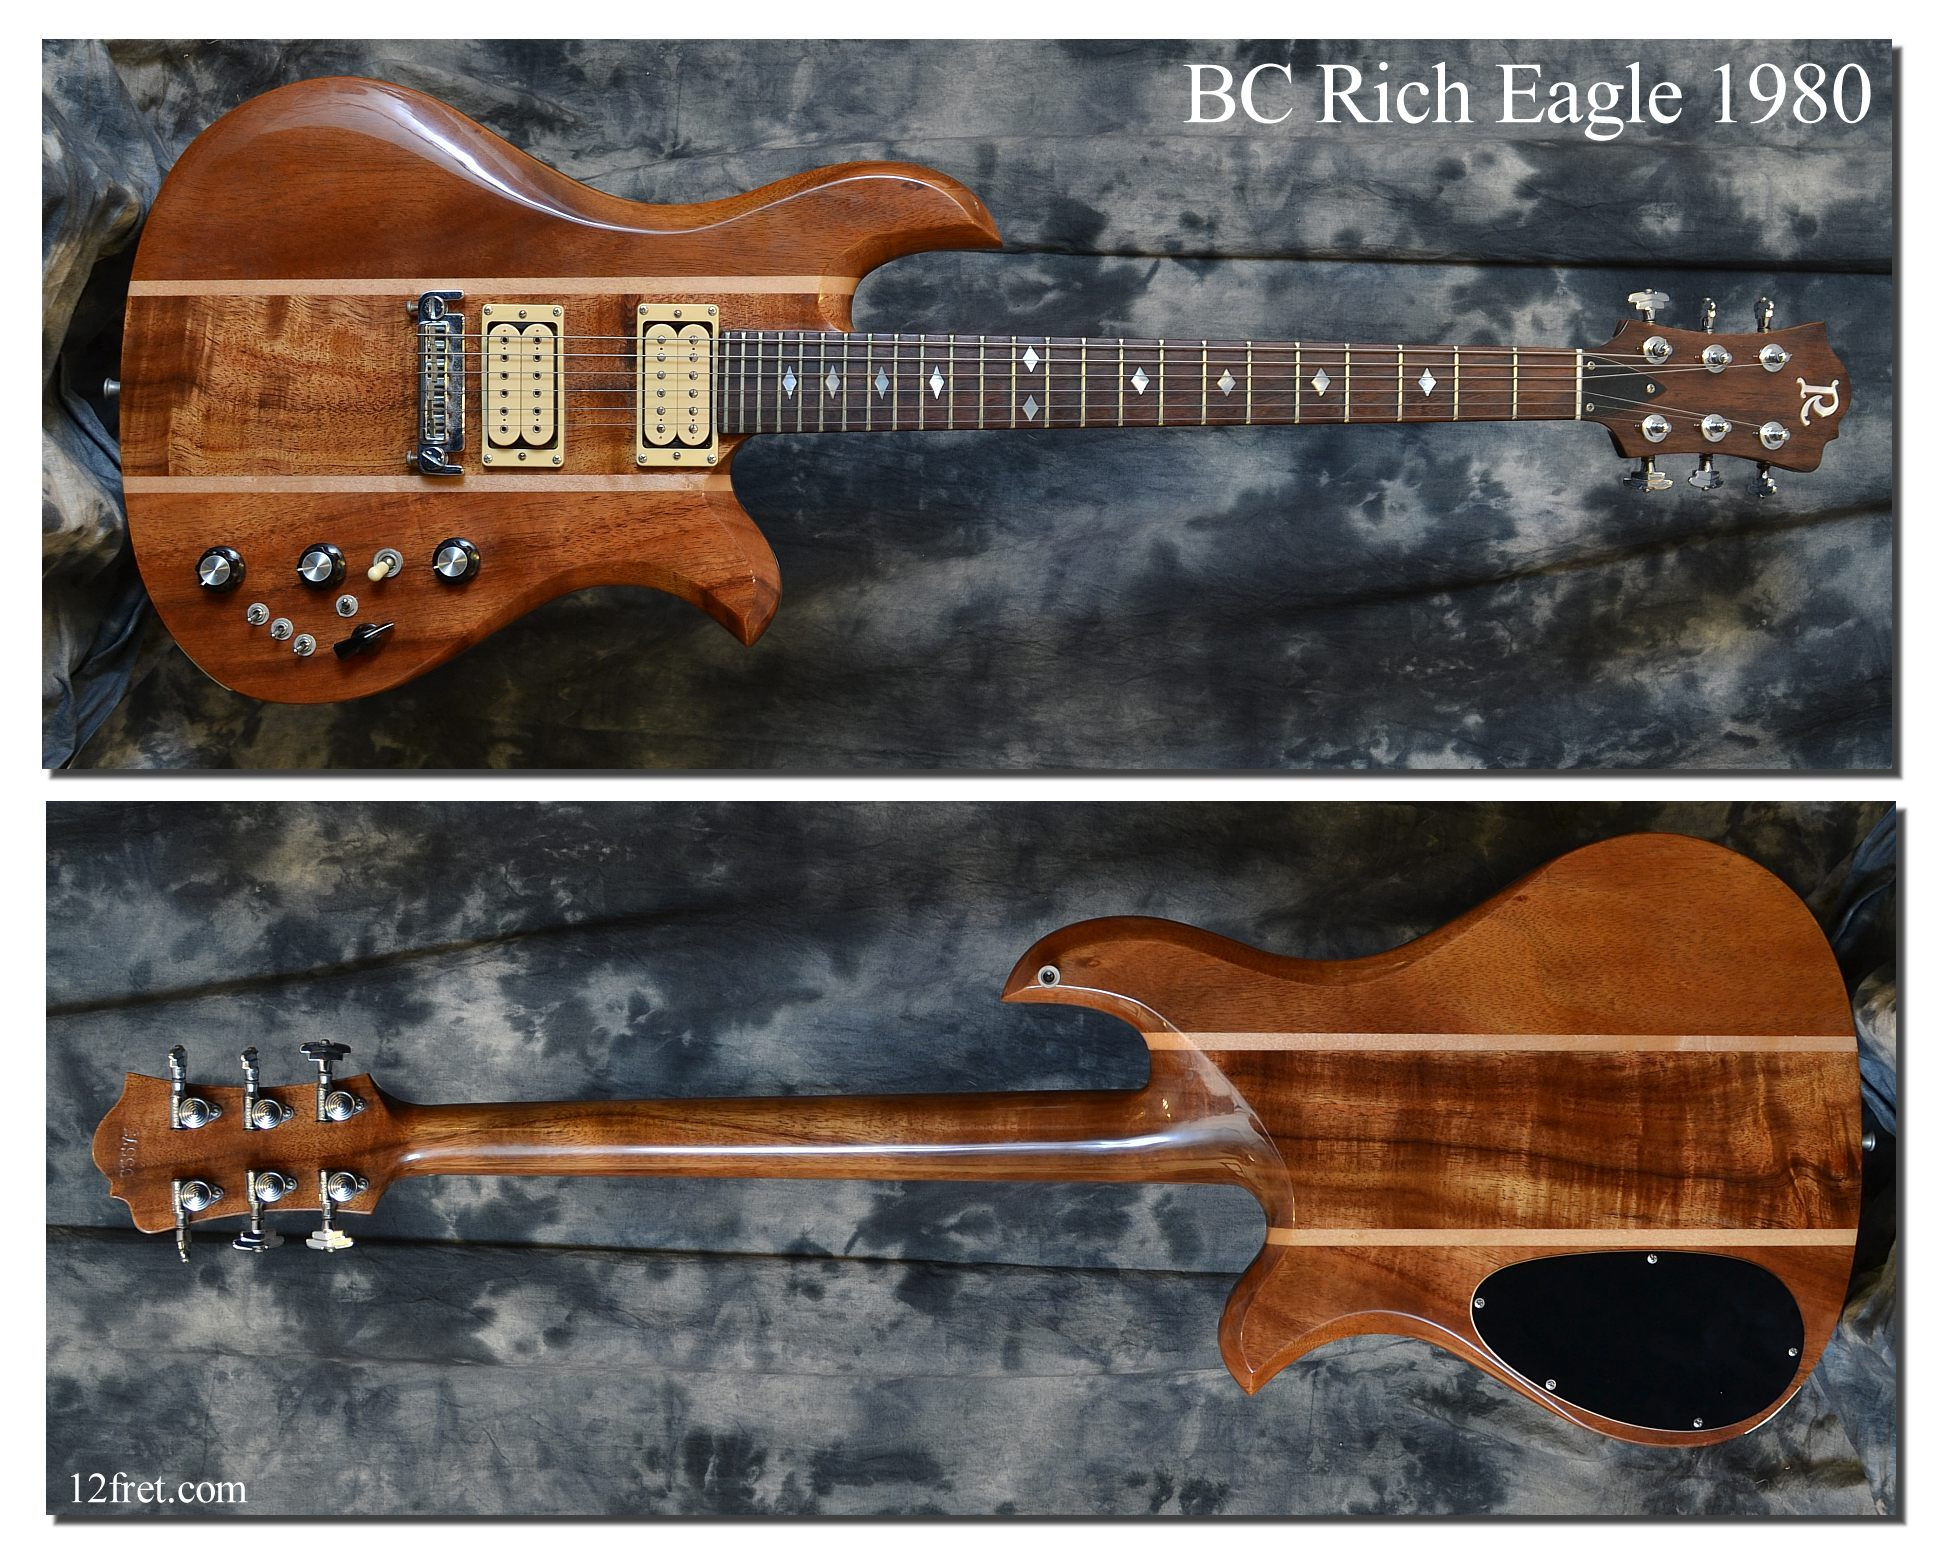 b5ca7f7fb8ba672bc92e909bd83245c3 1980 bc rich eagle koa with supreme electronics shred guitars bc rich eagle wiring diagram at crackthecode.co